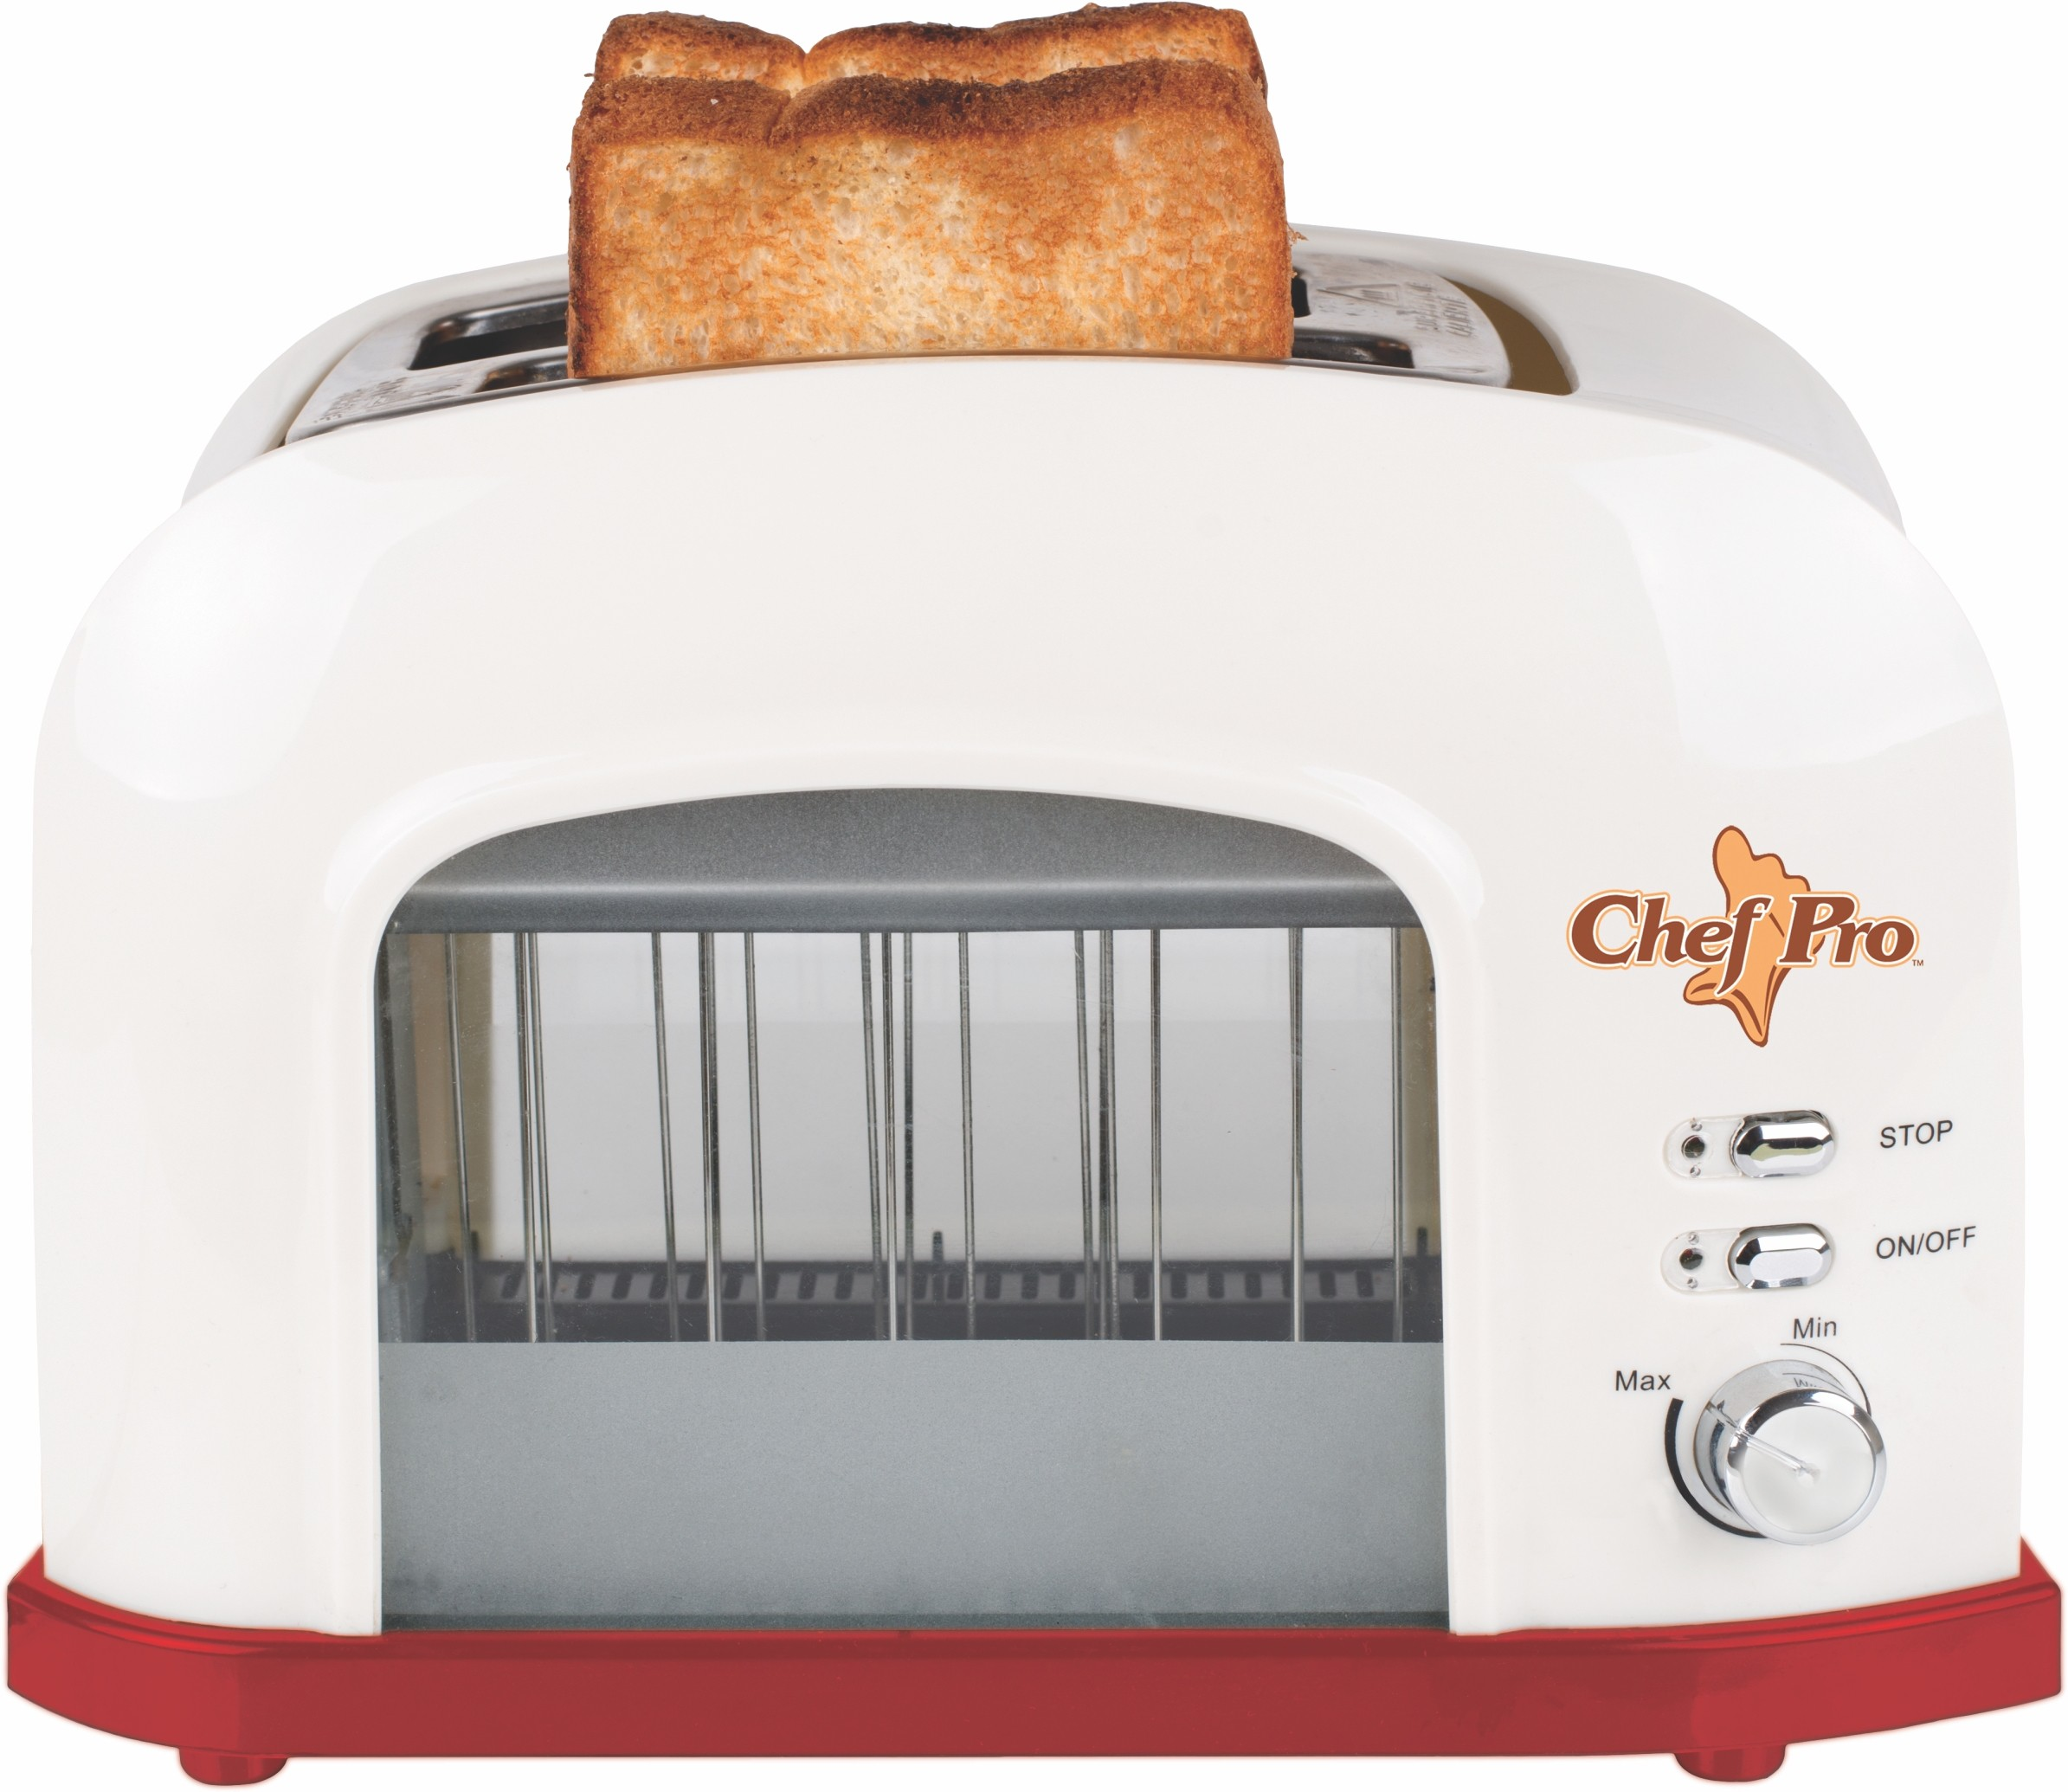 Chef Pro Toast Lift Transparent 750 W Pop Up Toaster(Off White)